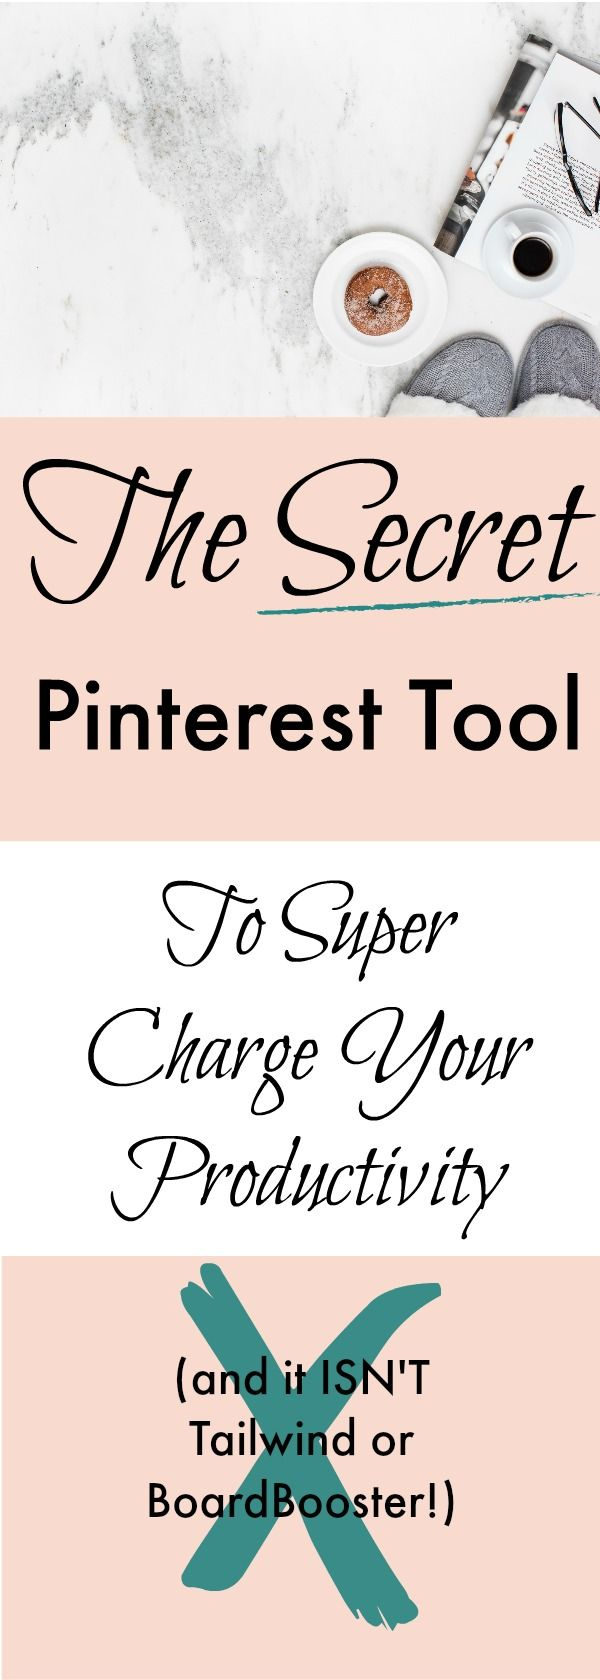 The Secret Pinterest Tools to Super Charge Your Productivity #pinterest #productivity #pinteresttips #bloggers #blog